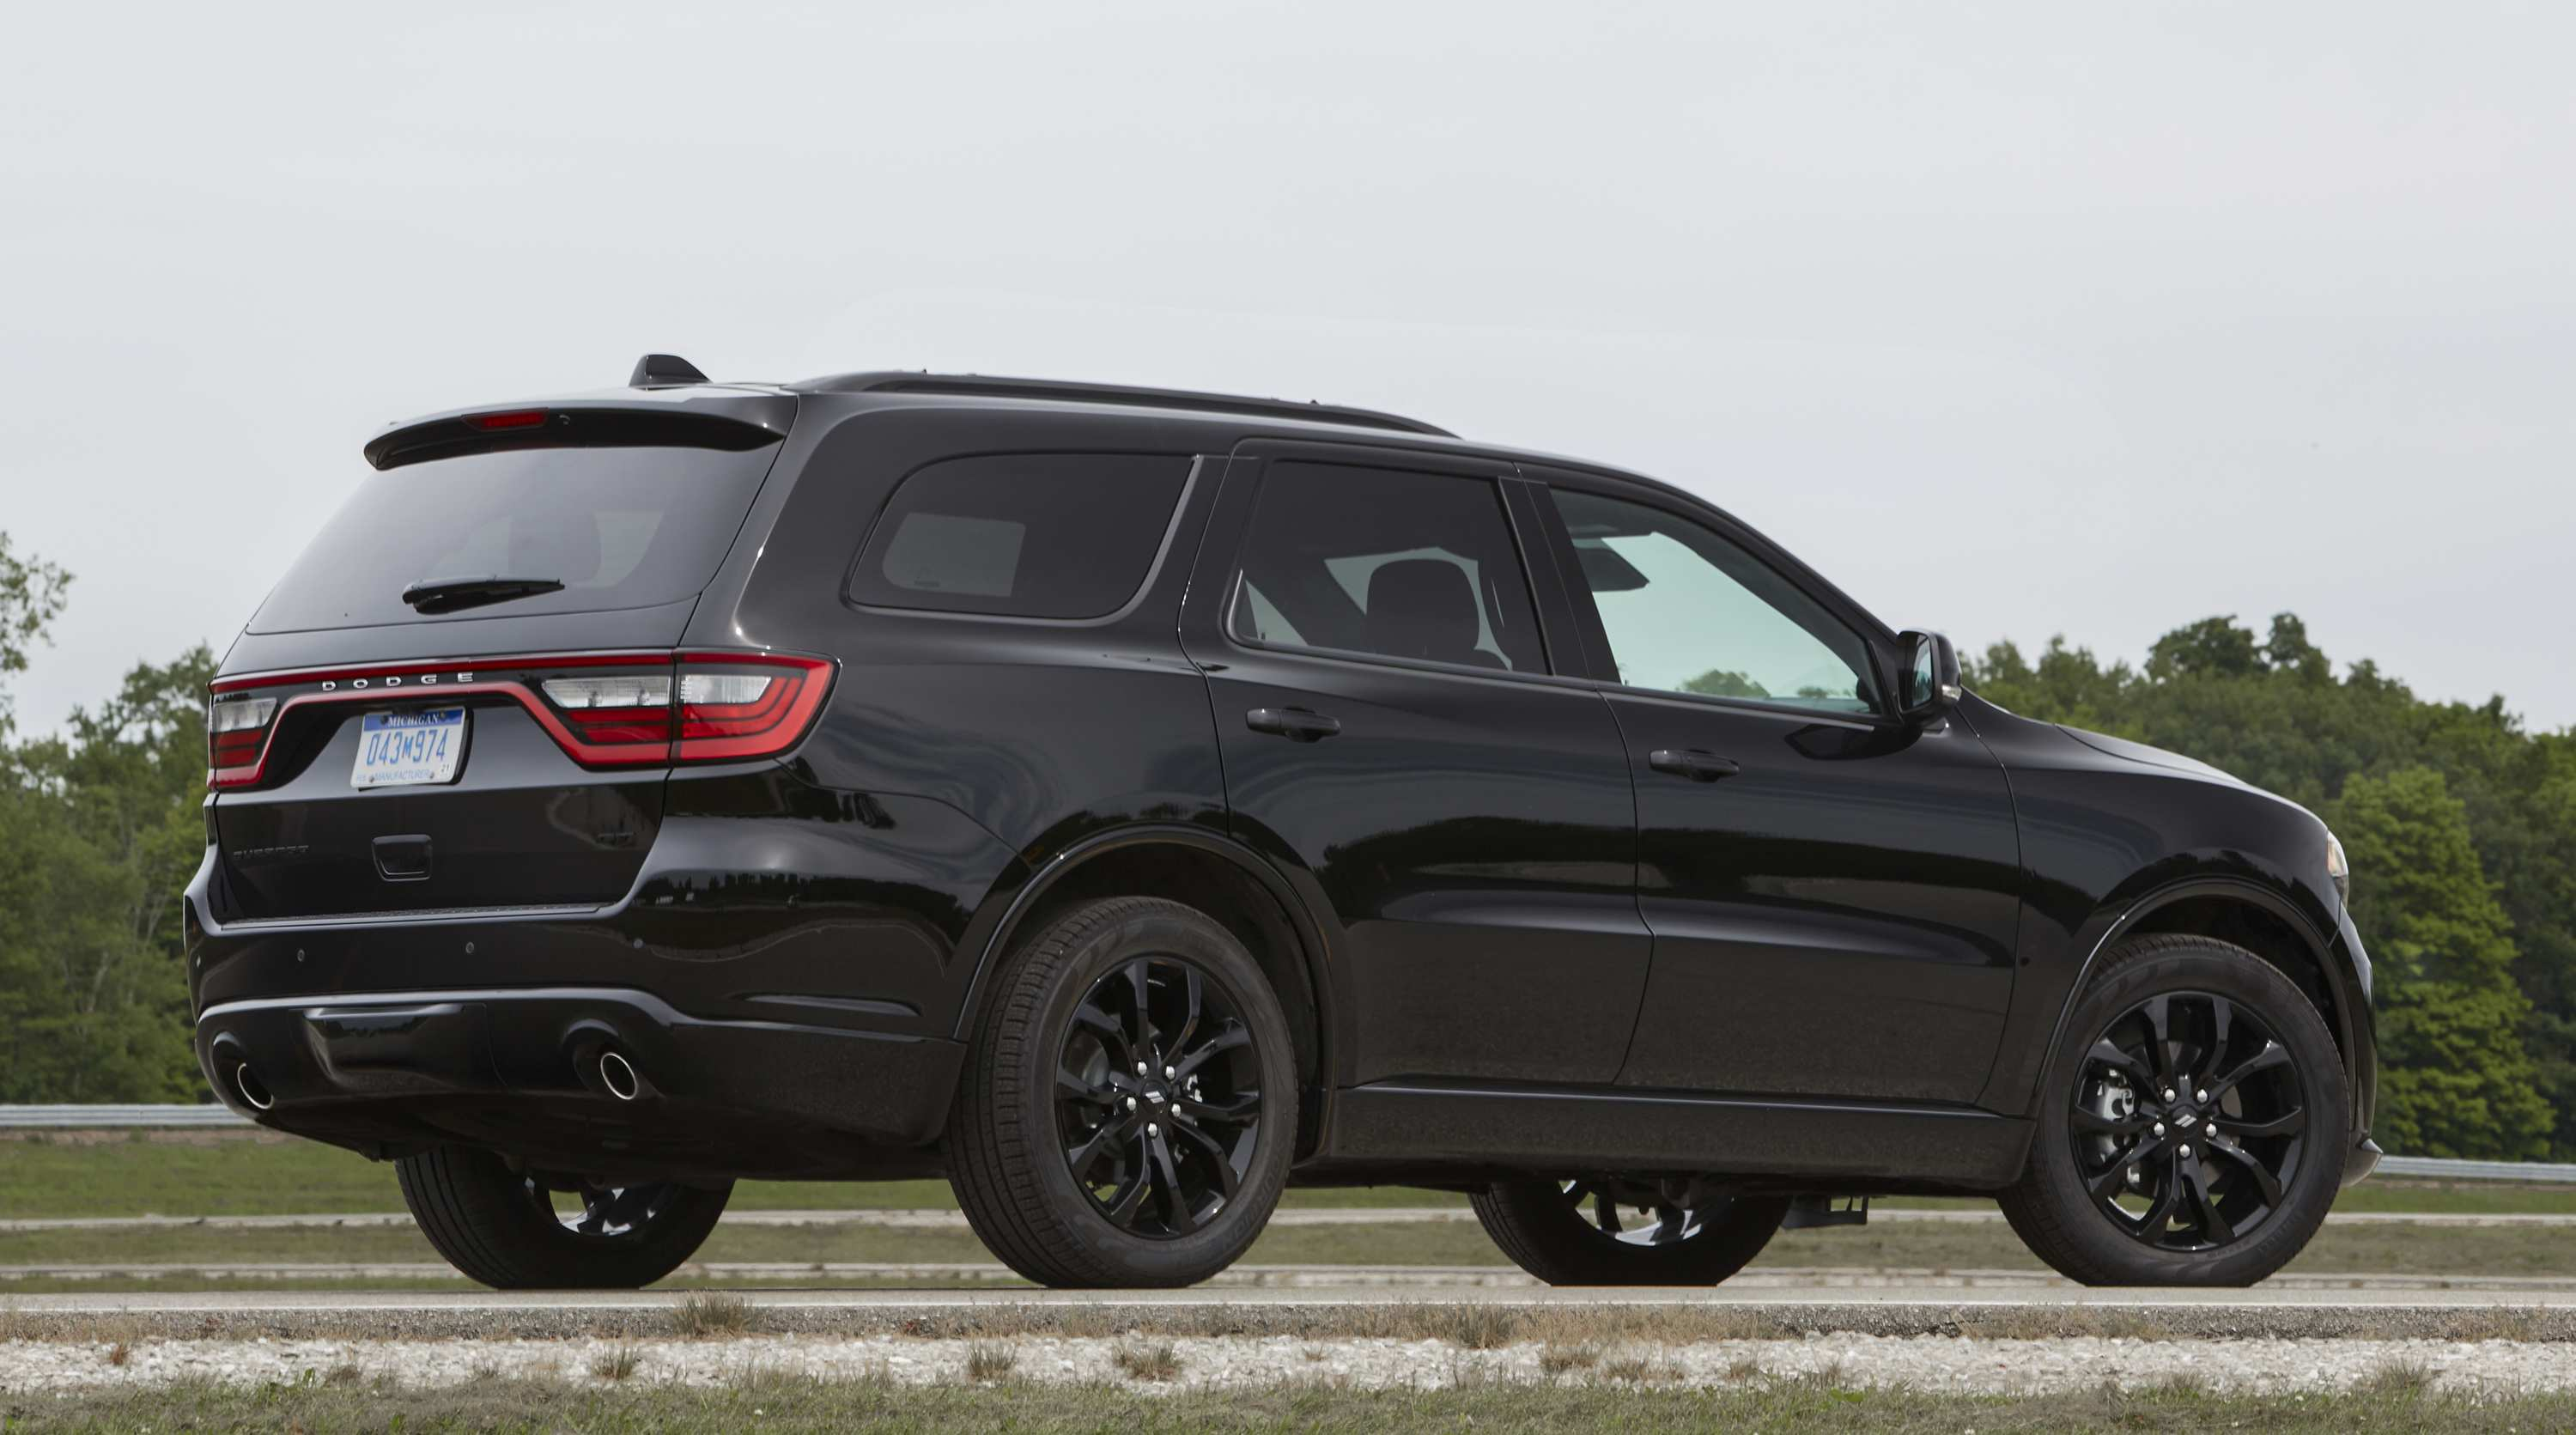 81 Great 2020 Dodge Durango Gt Price and Review by 2020 Dodge Durango Gt